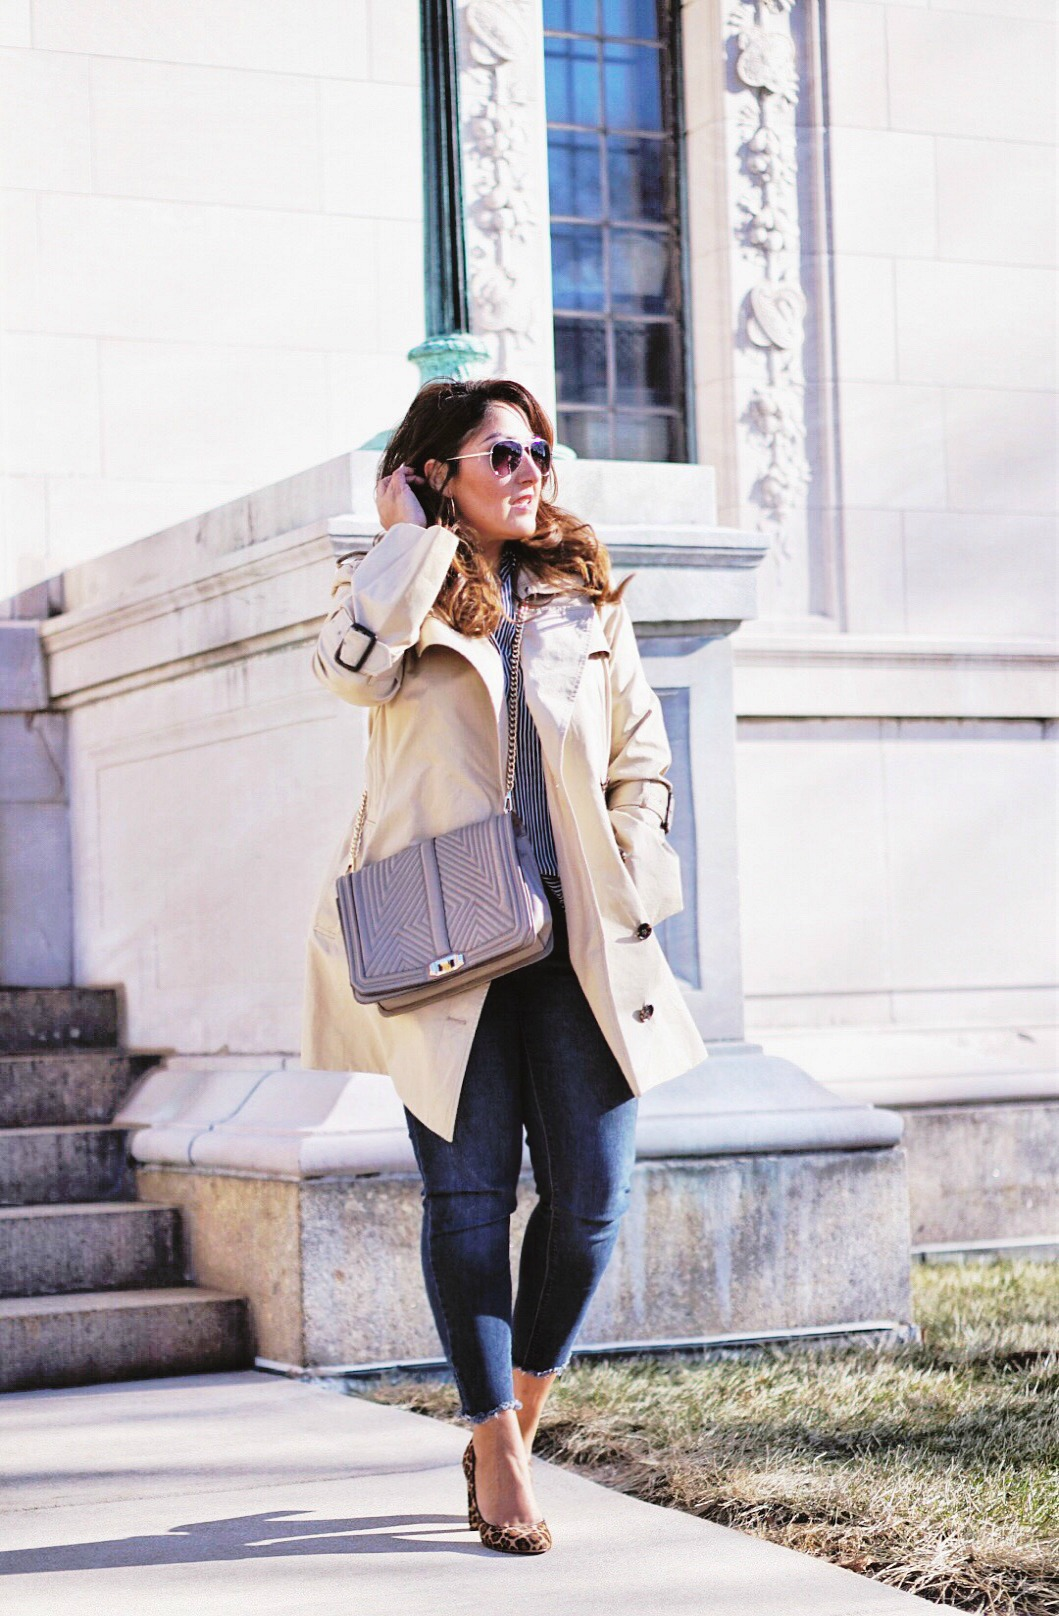 Styling the trench coat for a casual look.